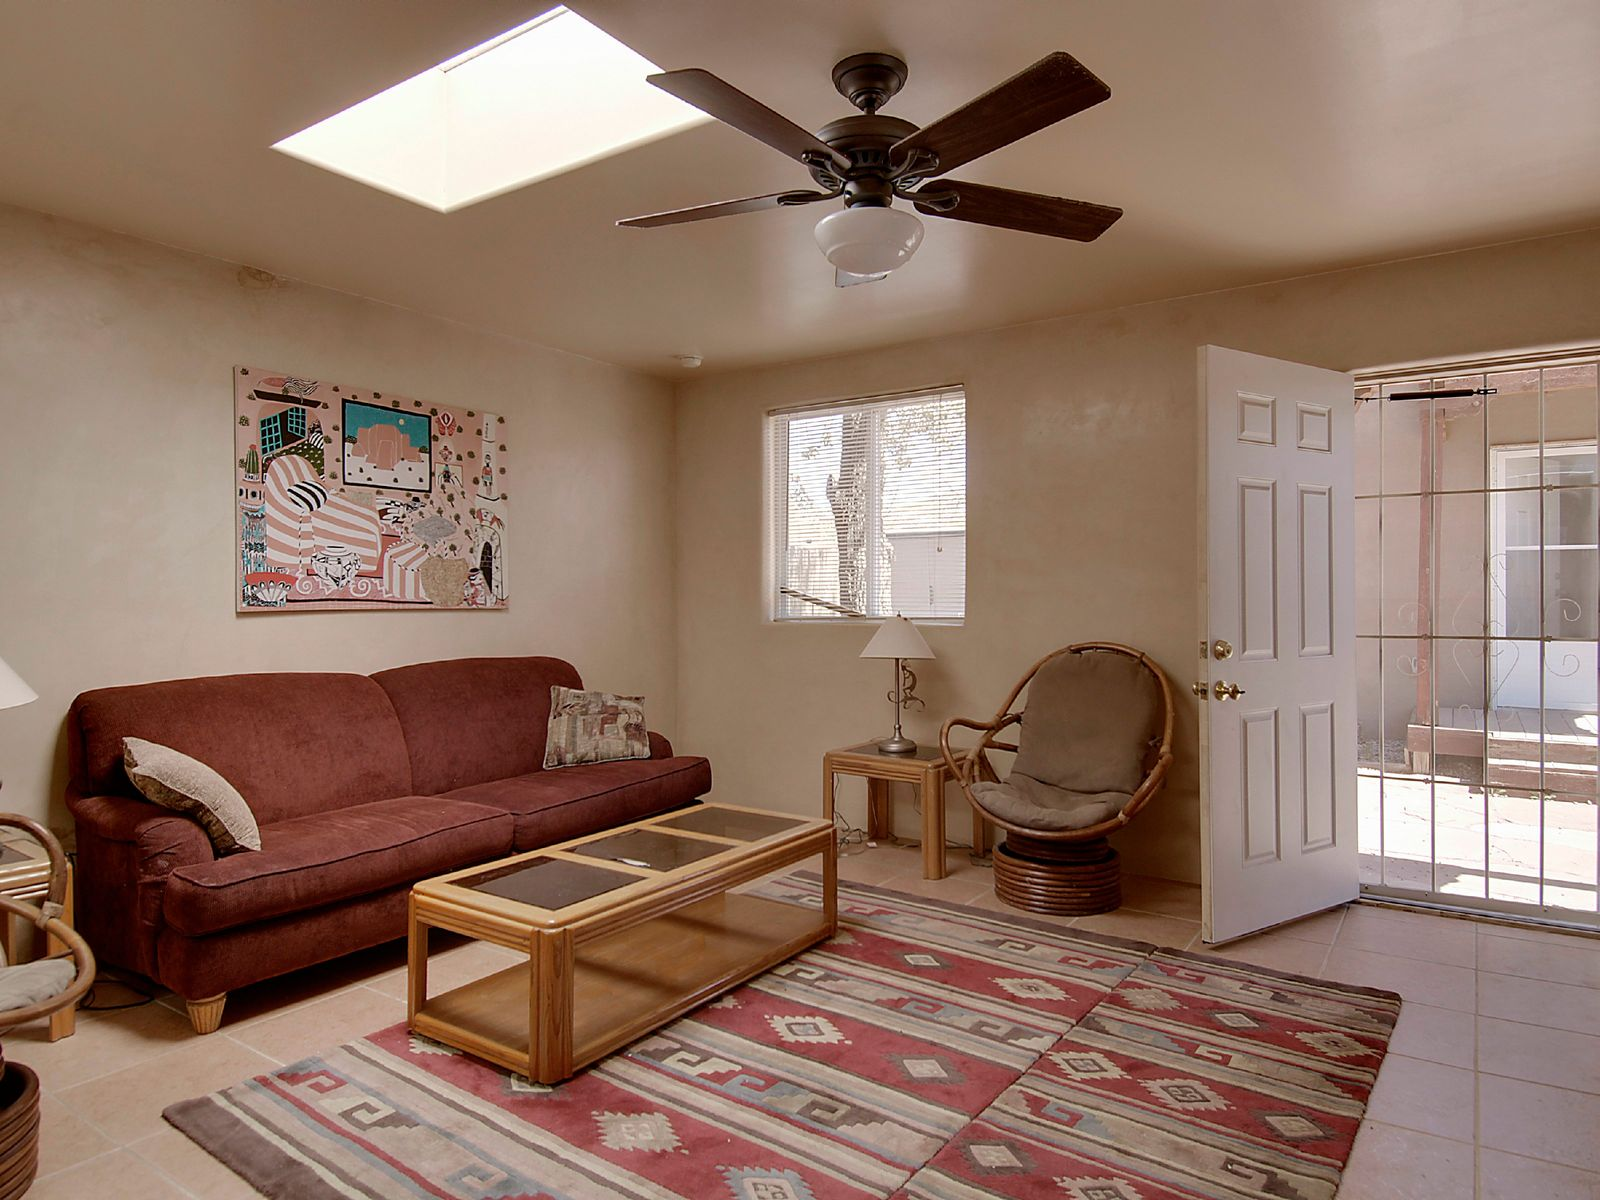 534 Onate Place, Santa Fe NM Single Family Home - Santa Fe Real Estate